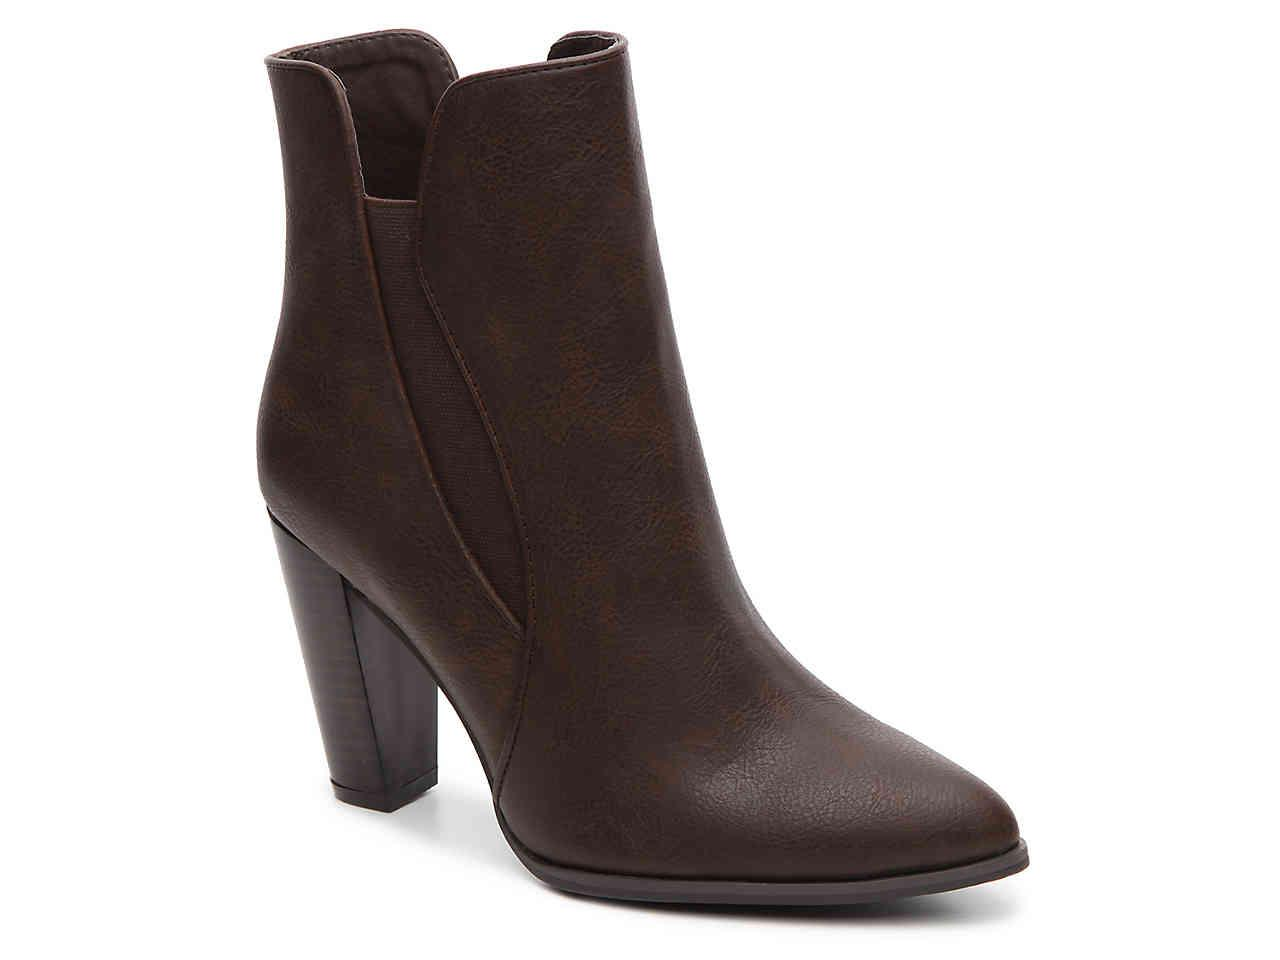 Shopping Online Cheap Price Penny Loves Kenny Avid High Heal Chelsea Boot(Women's) -Khaki Faux Leather Largest Supplier Sale Online Buy Cheap Footlocker Finishline Clearance Pay With Visa 2018 Newest 4hZppeILj